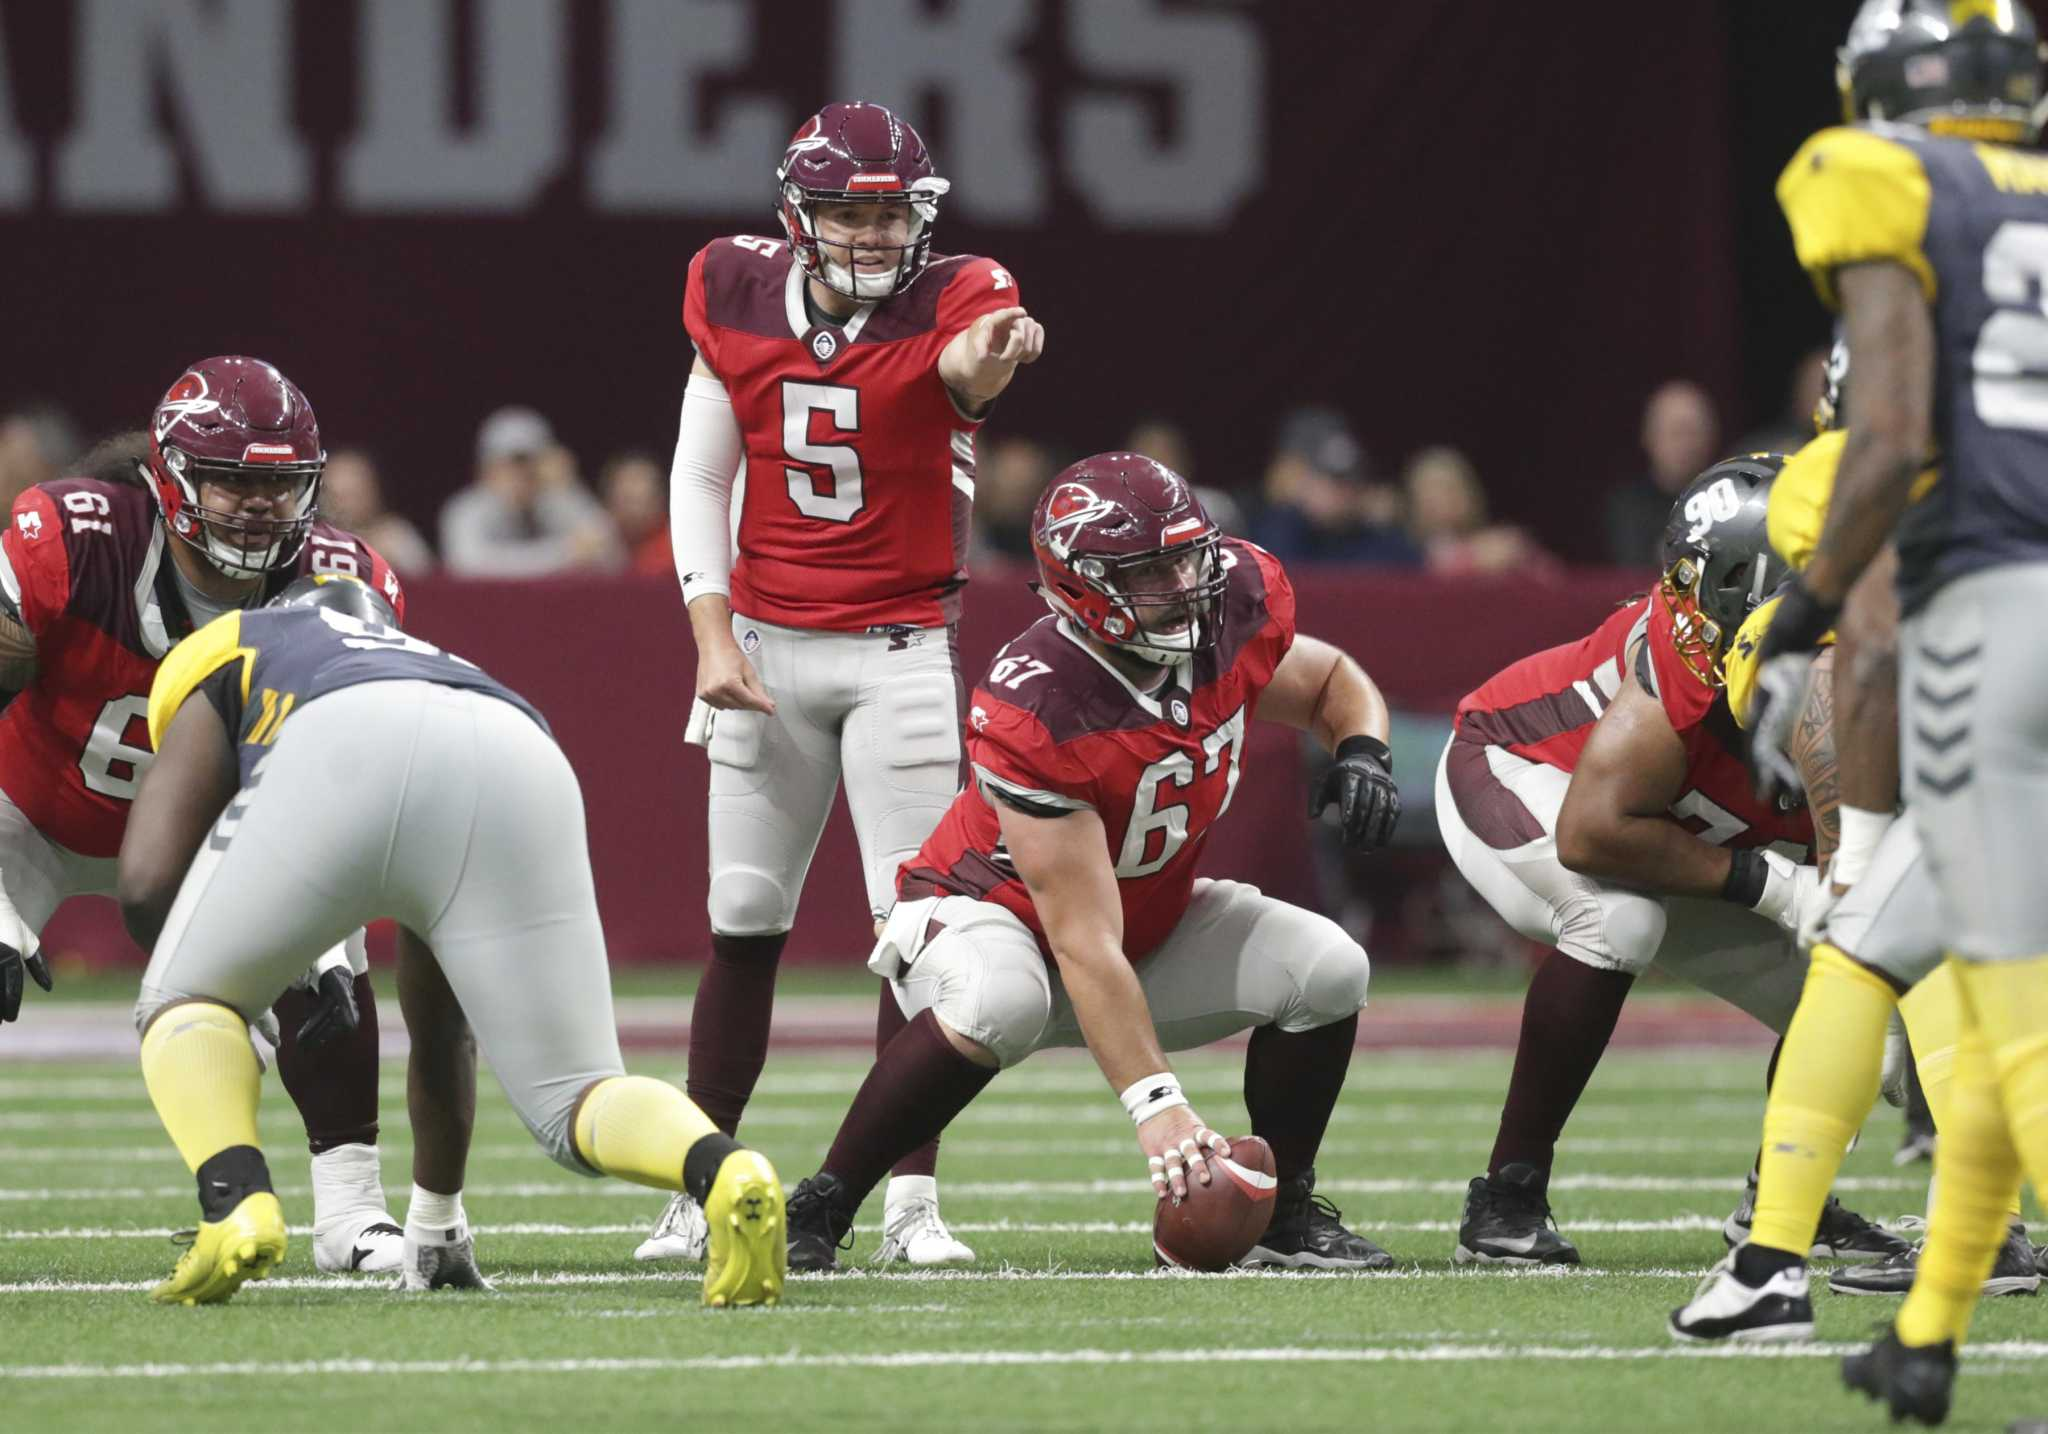 Woodside shows well in San Antonio Commanders debut, but competition remains